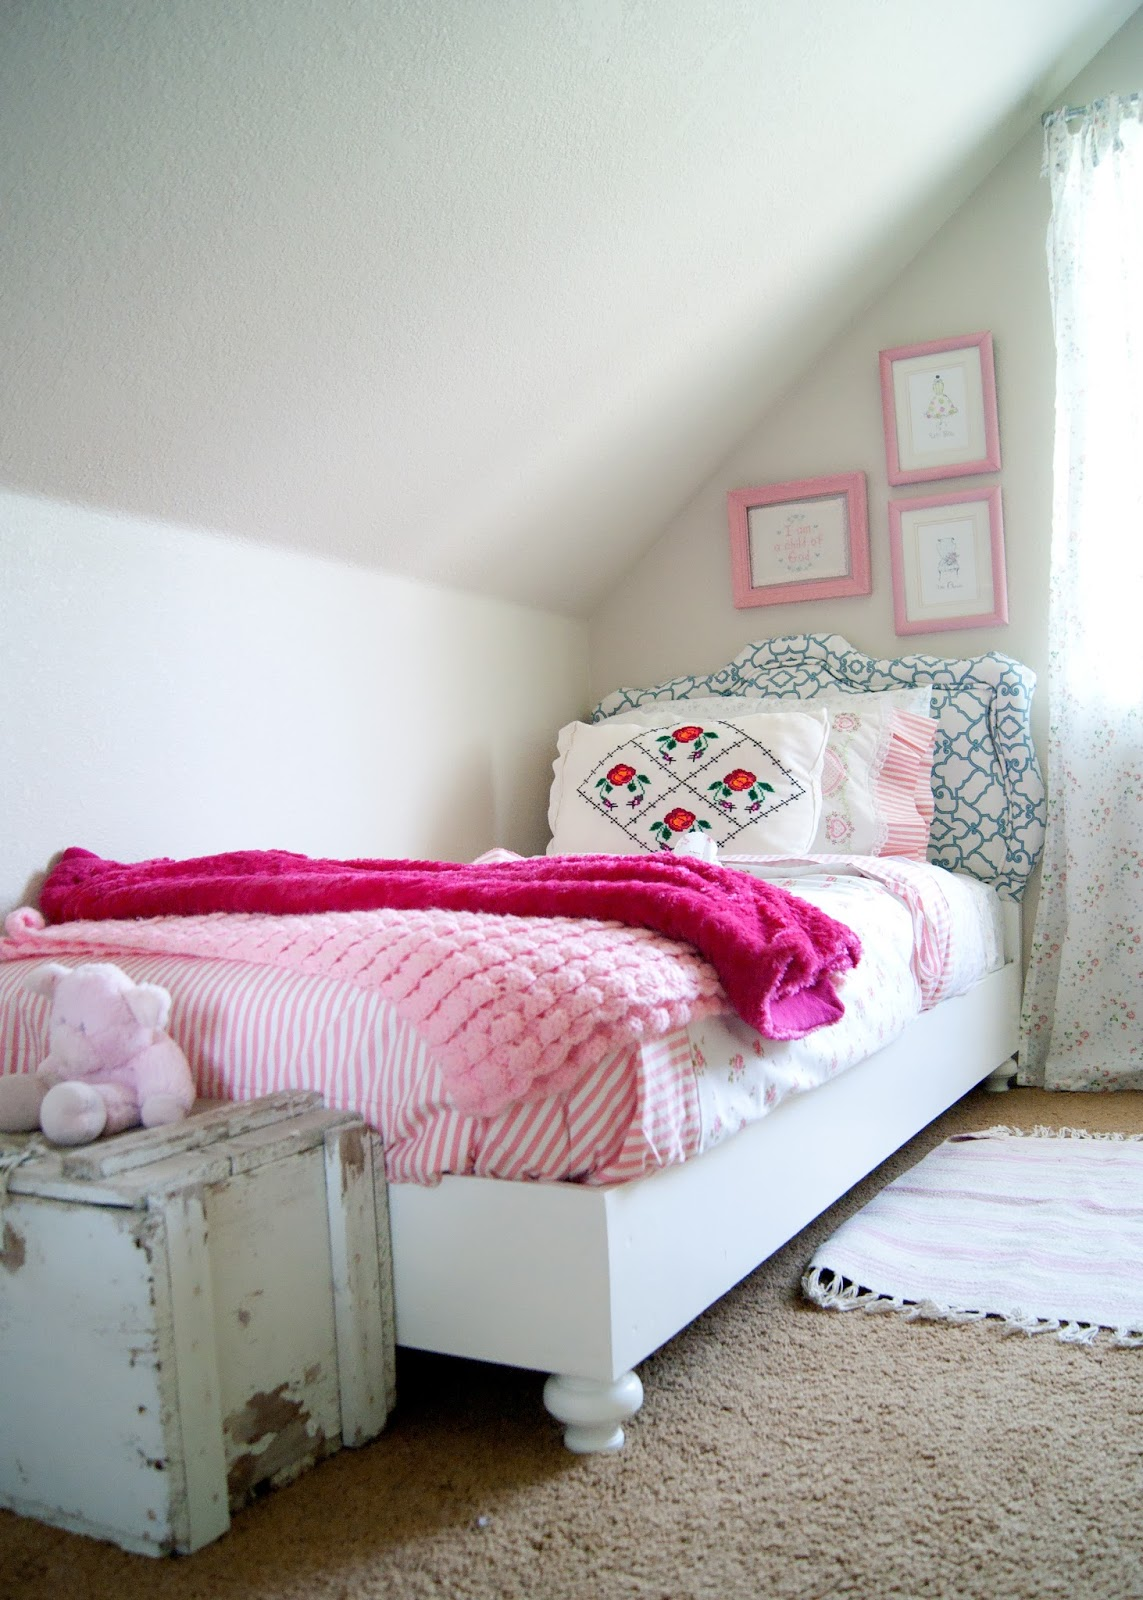 DIY bed, vintage headboard, vintage linens and old toolbox